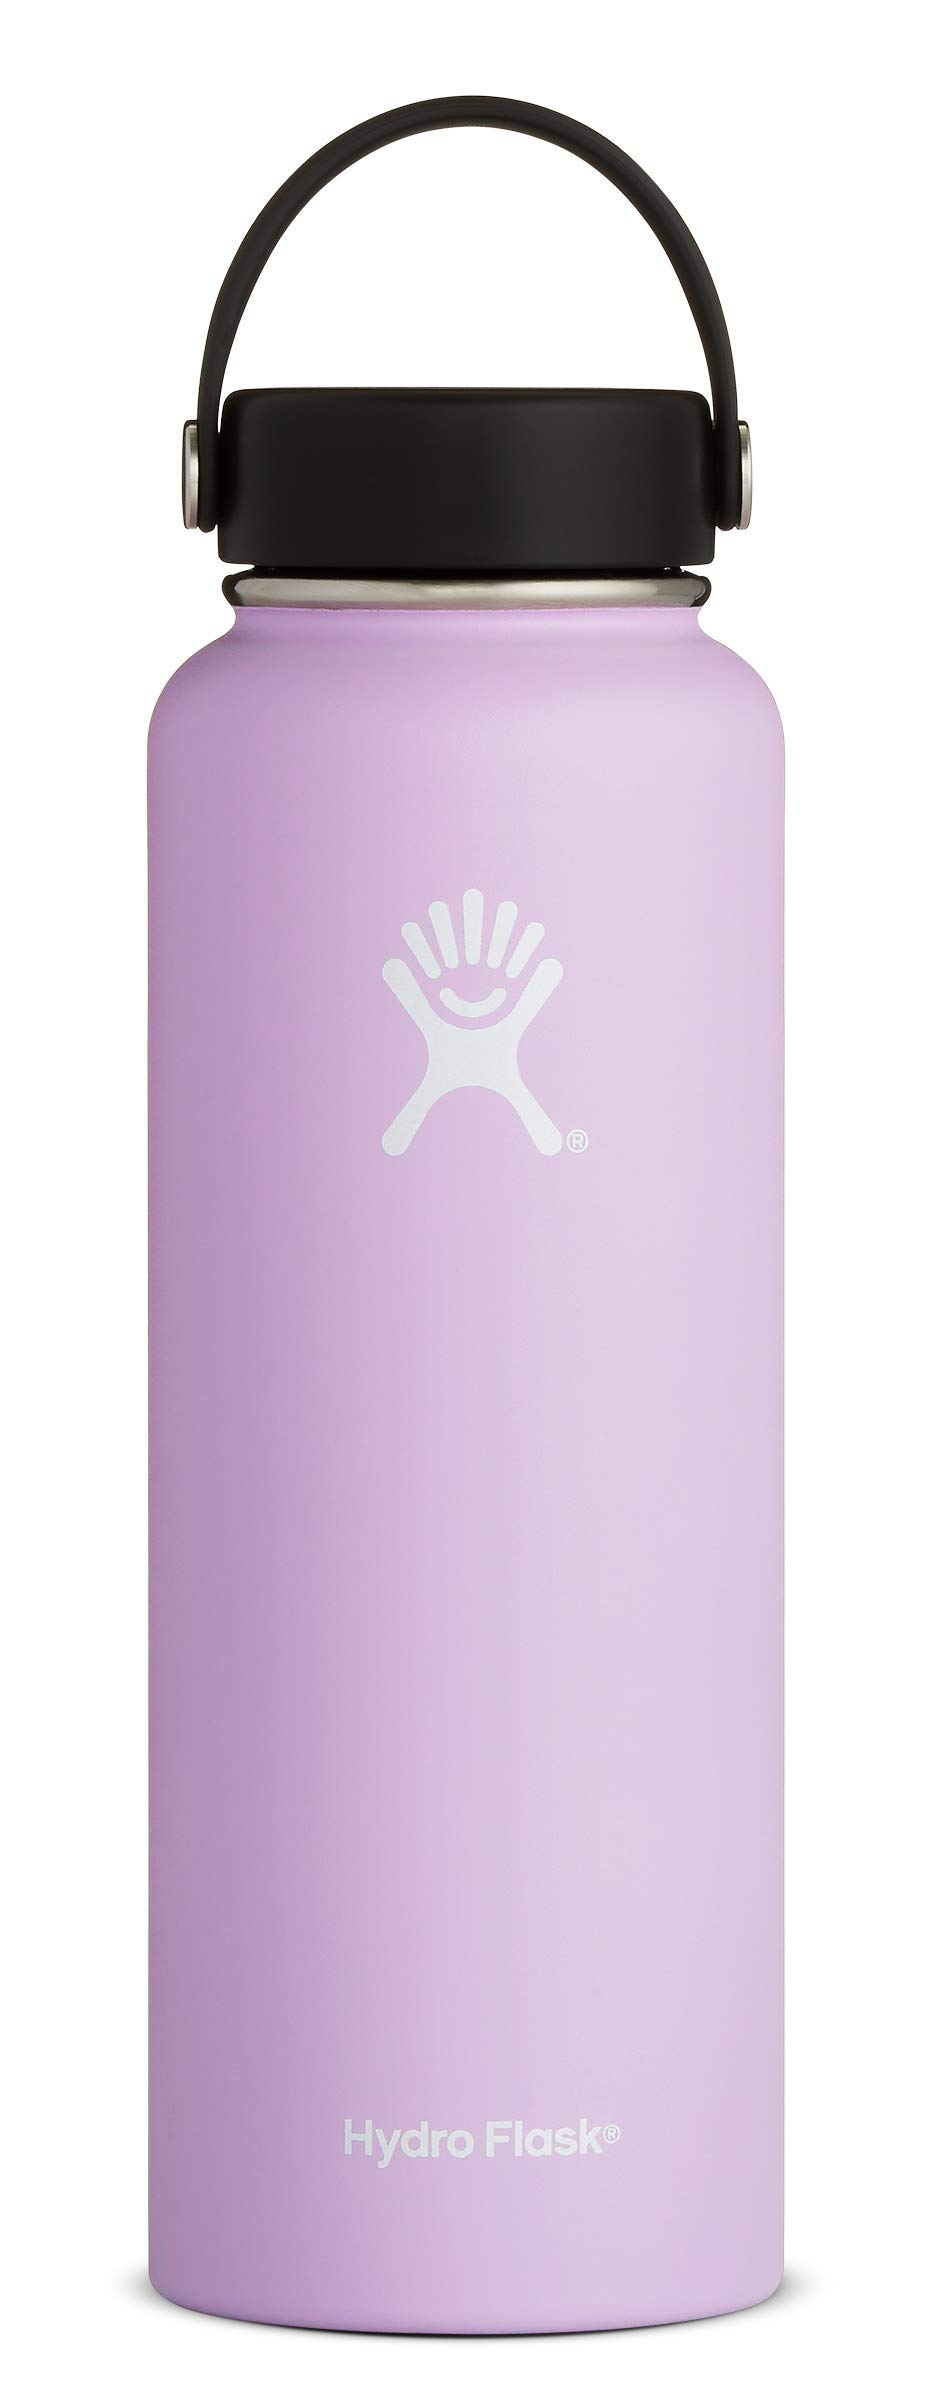 Hydro Flask 40 oz Double Wall Vacuum Insulated Stainless Steel Leak Proof Sports Water Bottle, Wide Mouth with BPA Free Flex Cap, Lilac